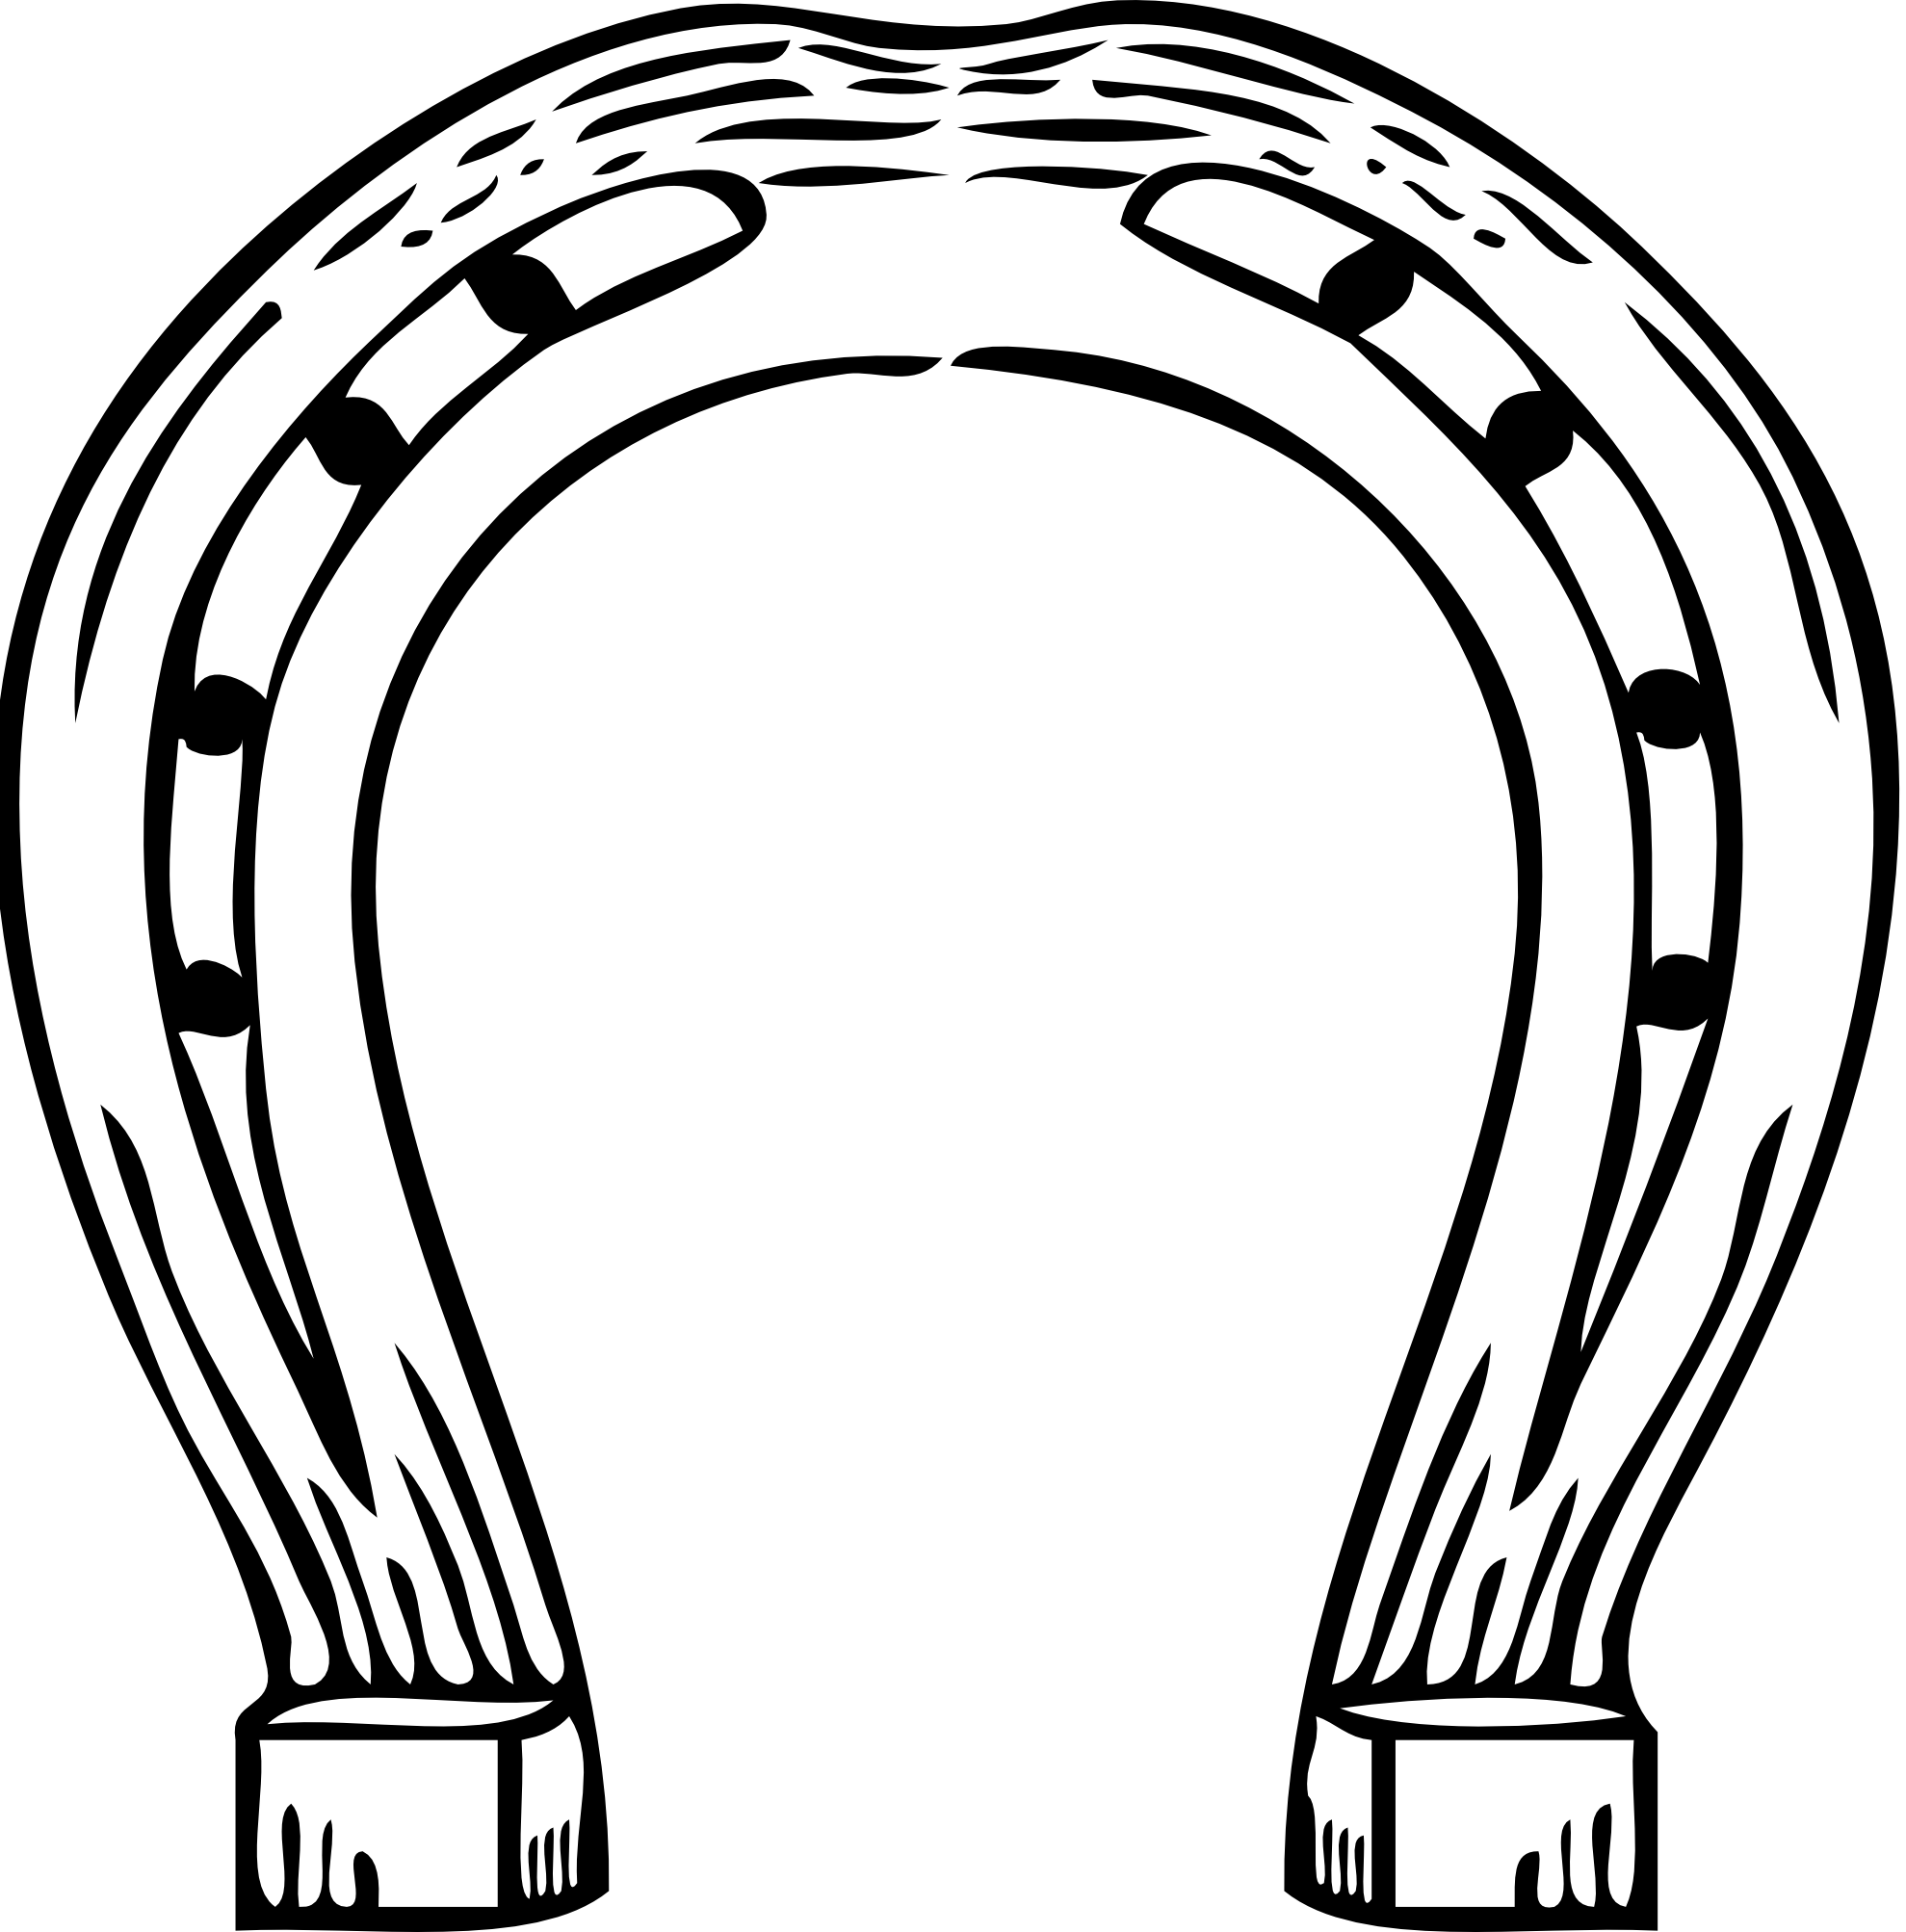 Horseshoe Vector - ClipArt Best